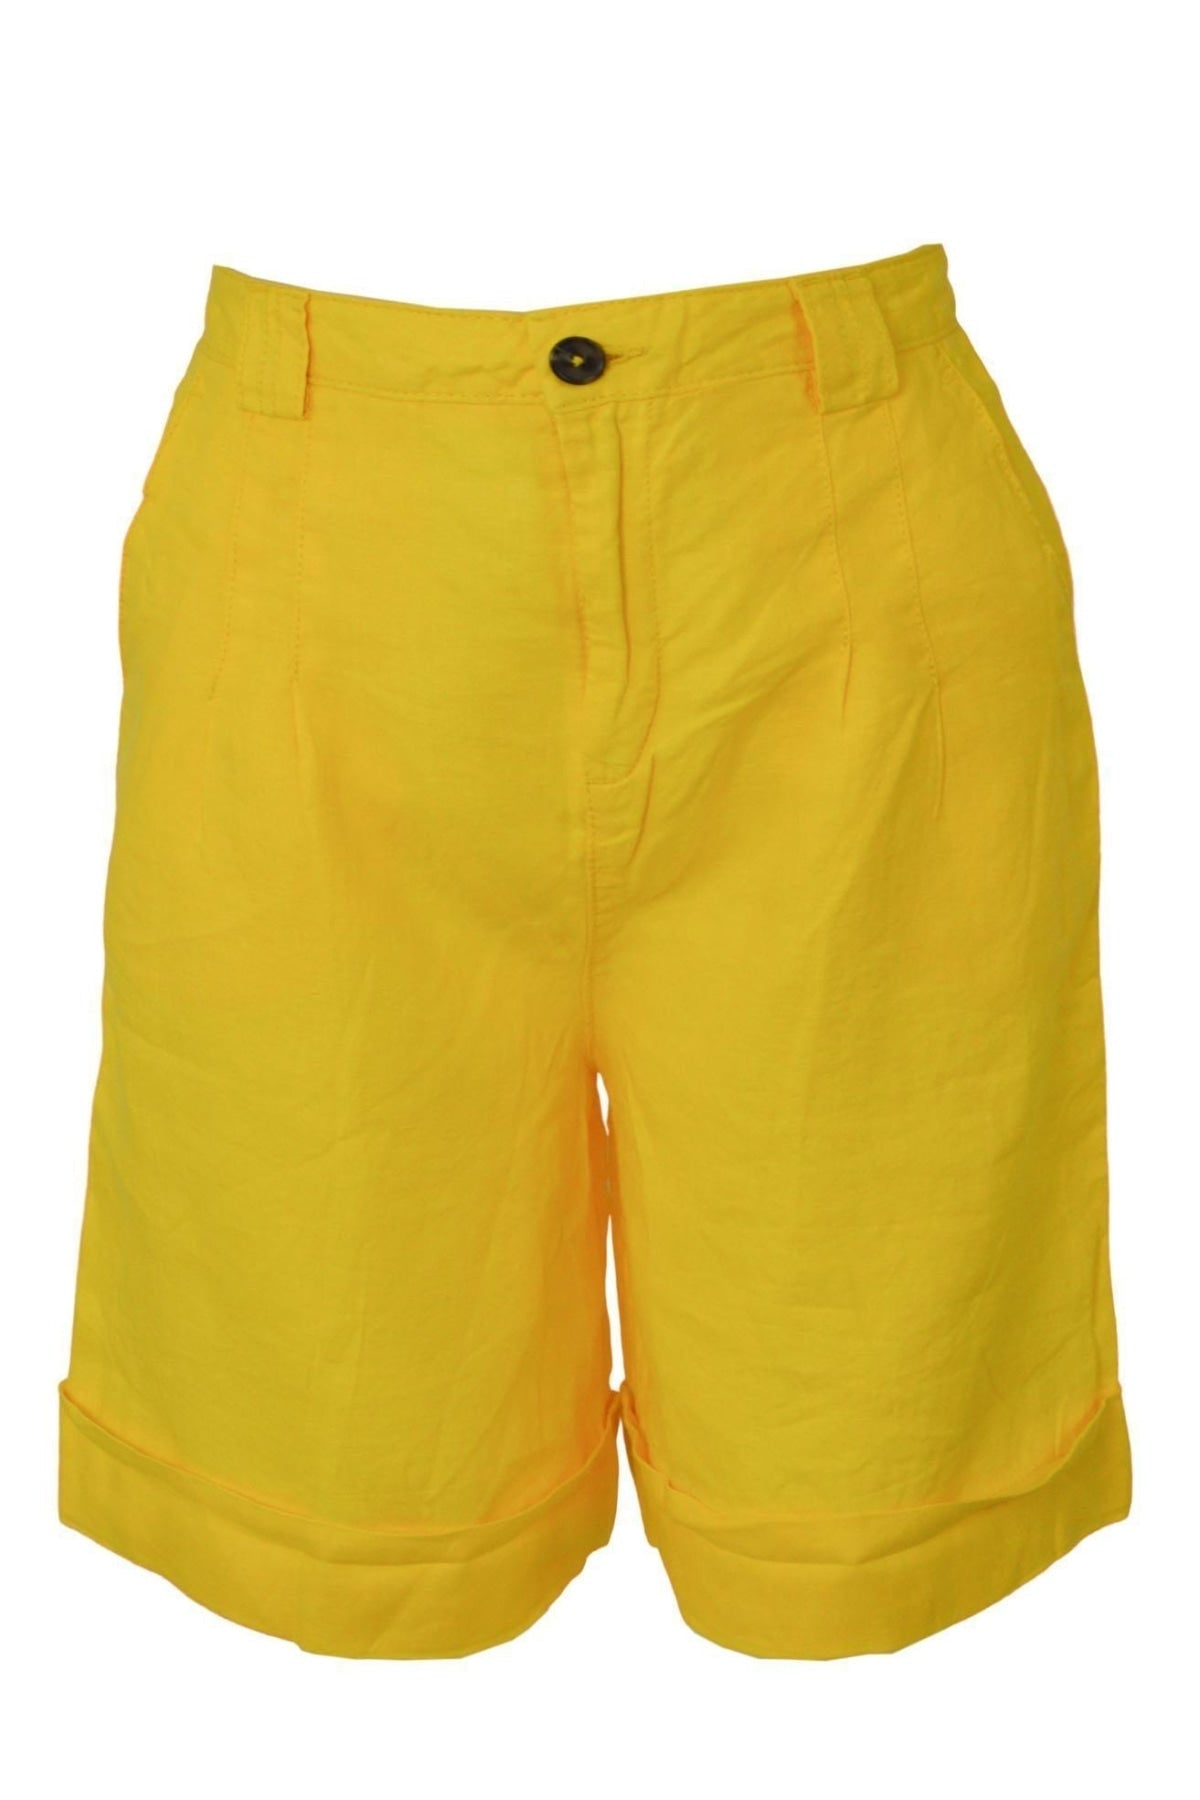 United Colors Of Benetton Cotton Bermuda Shorts | 6 / Yellow Secret Label